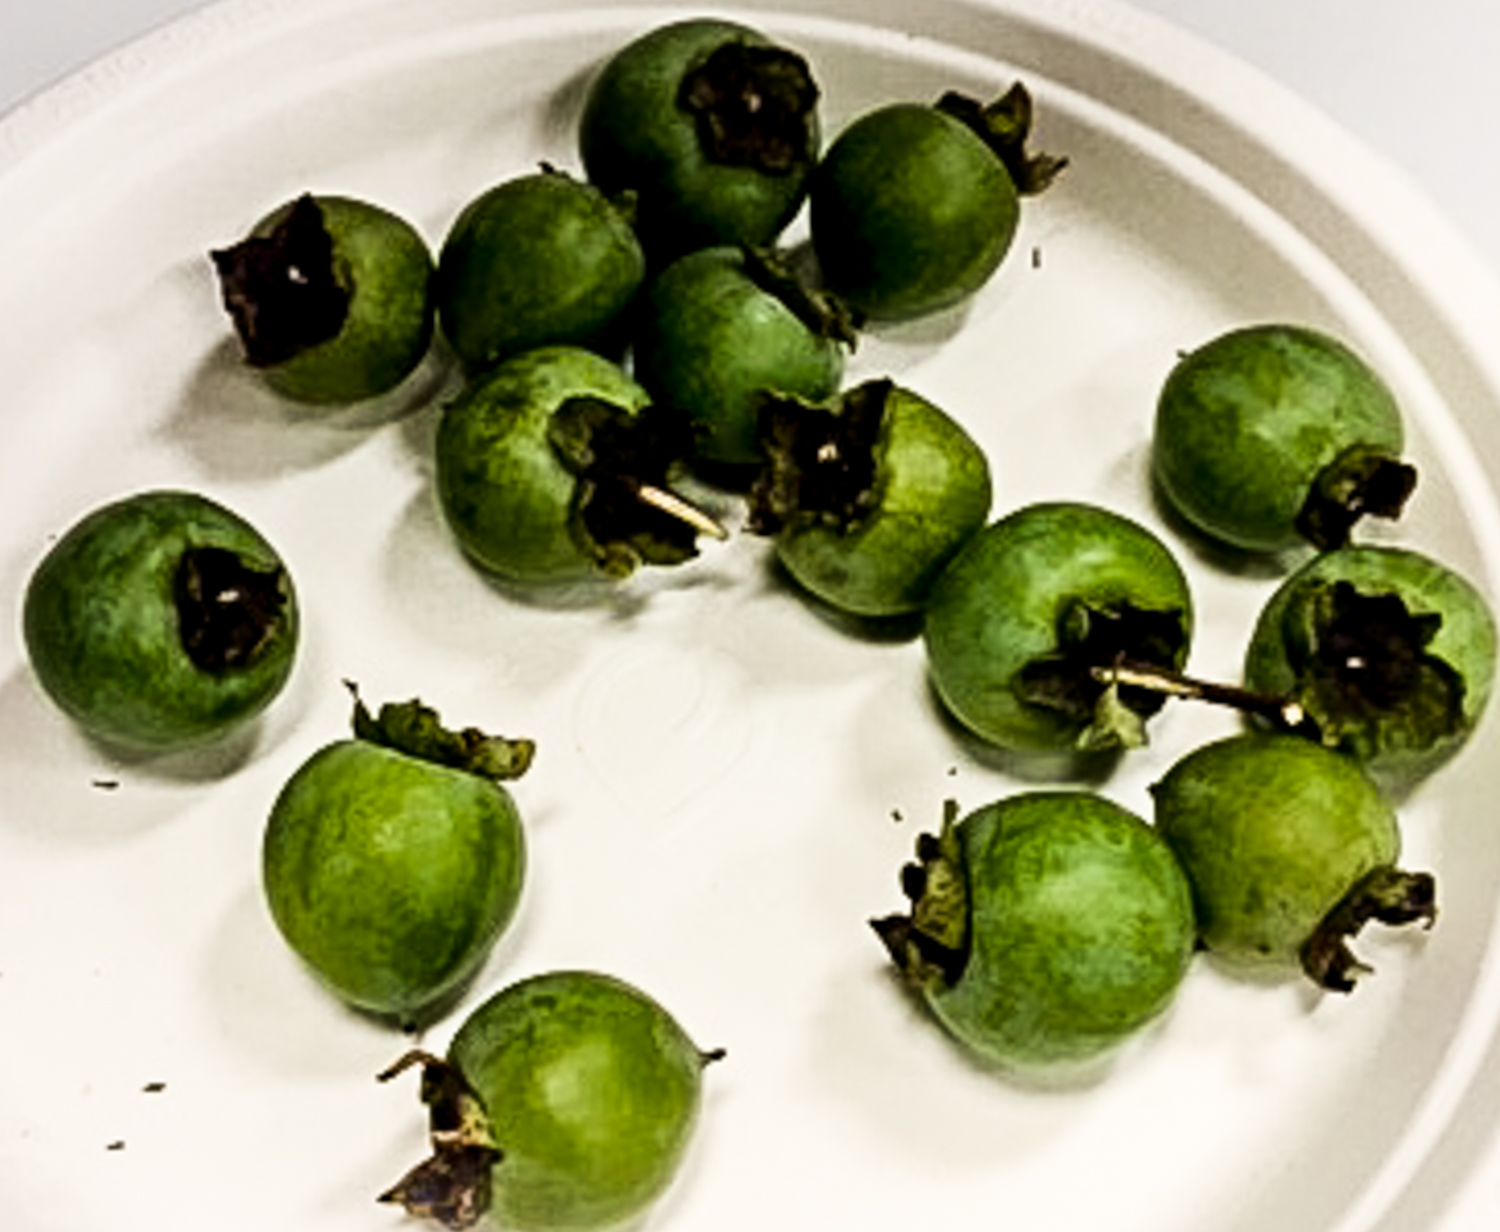 When Chef Ouita Michel visited the Kentucky State Fair two weeks ago, she discovered that wild persimmons and pawpaws had to be entered and judged in their unripened, green phase. Phew!  Photo credit: Ouita Michel--thank you!